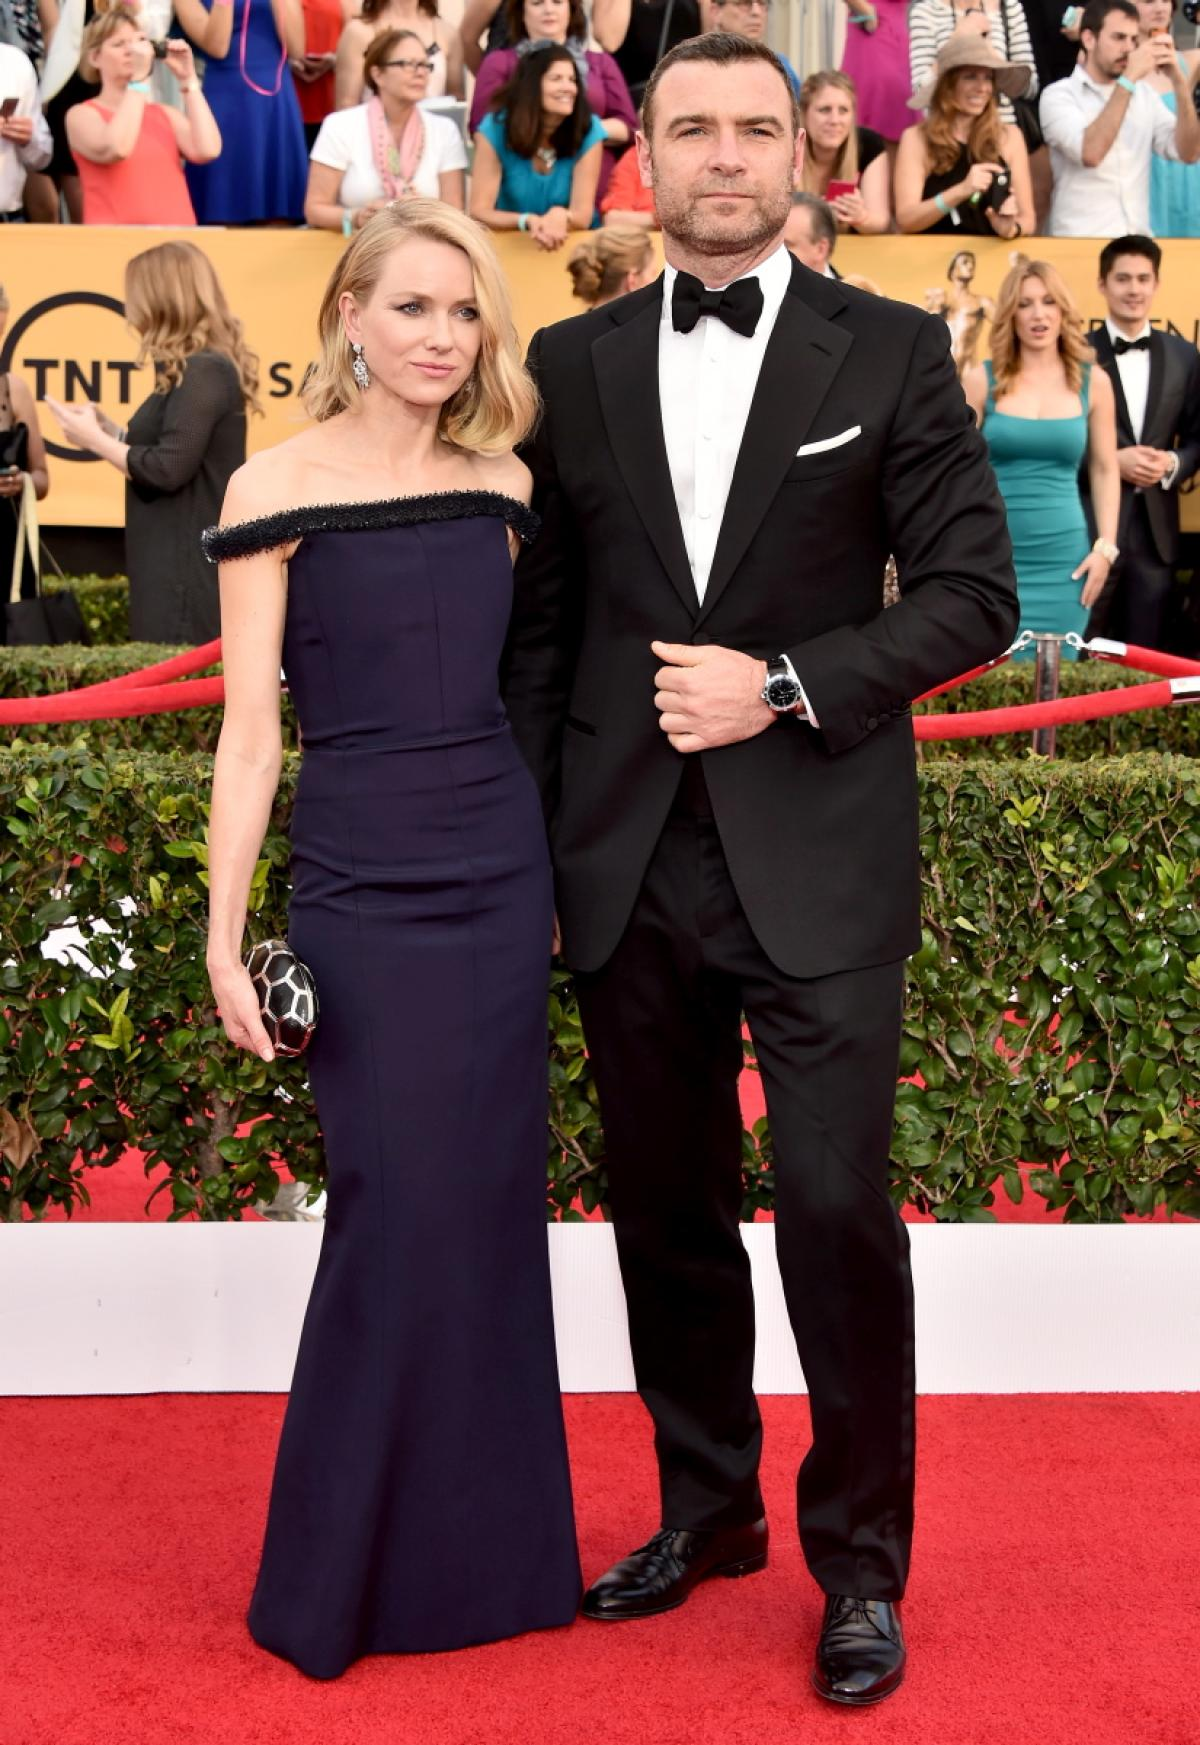 Naomi Watts and Liev Schreiber attend TNT's 21st Annual Screen Actors Guild Awards at The